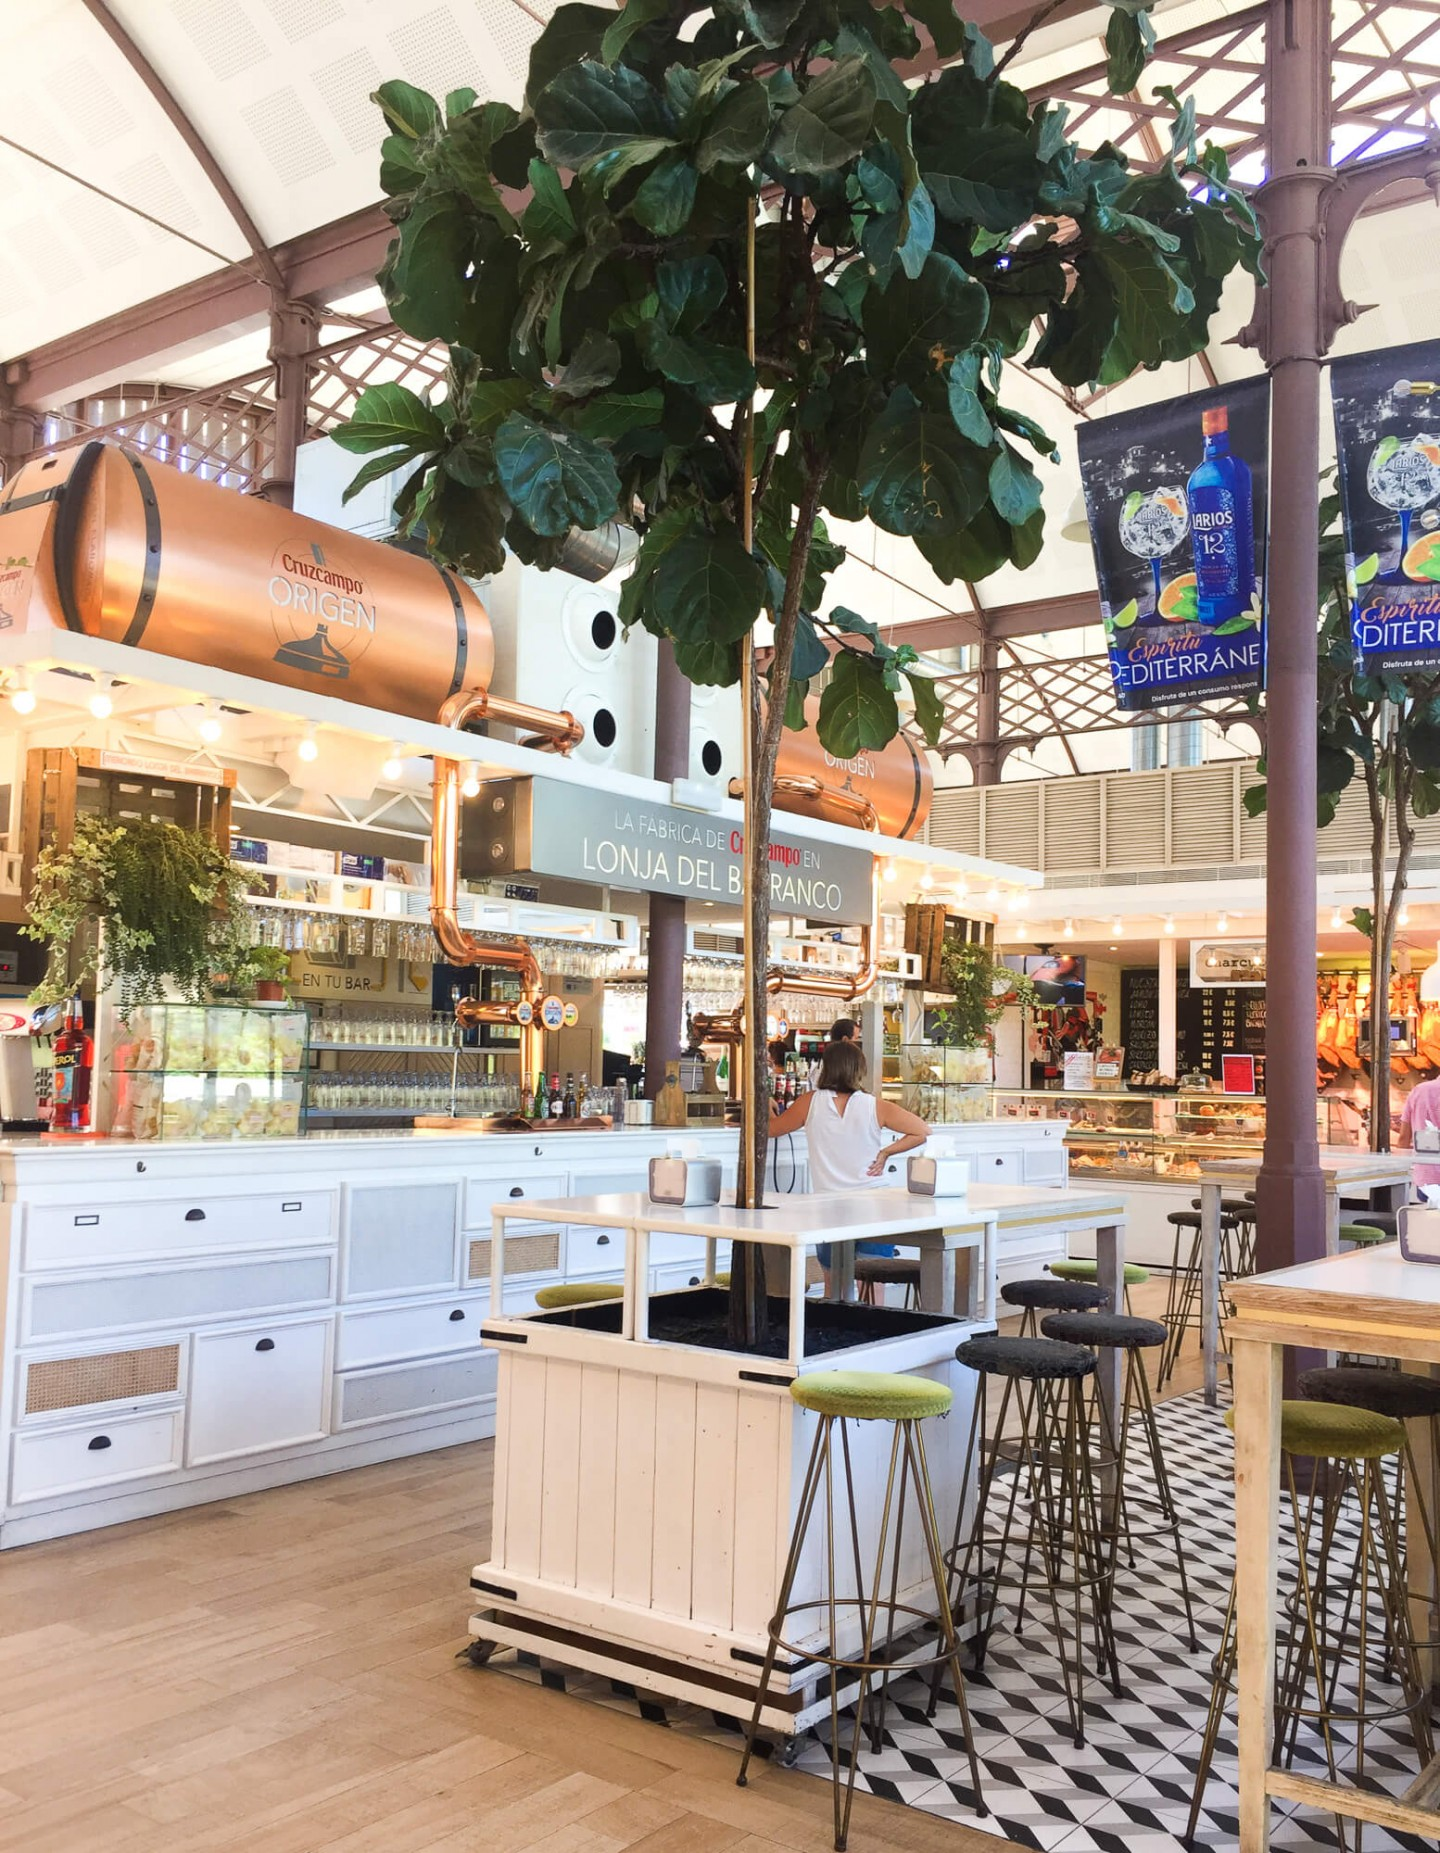 Mercado Lonja del Barranco is on our list of top places to eat in Seville, Spain. There lots of choice include lots of yummy tapas.